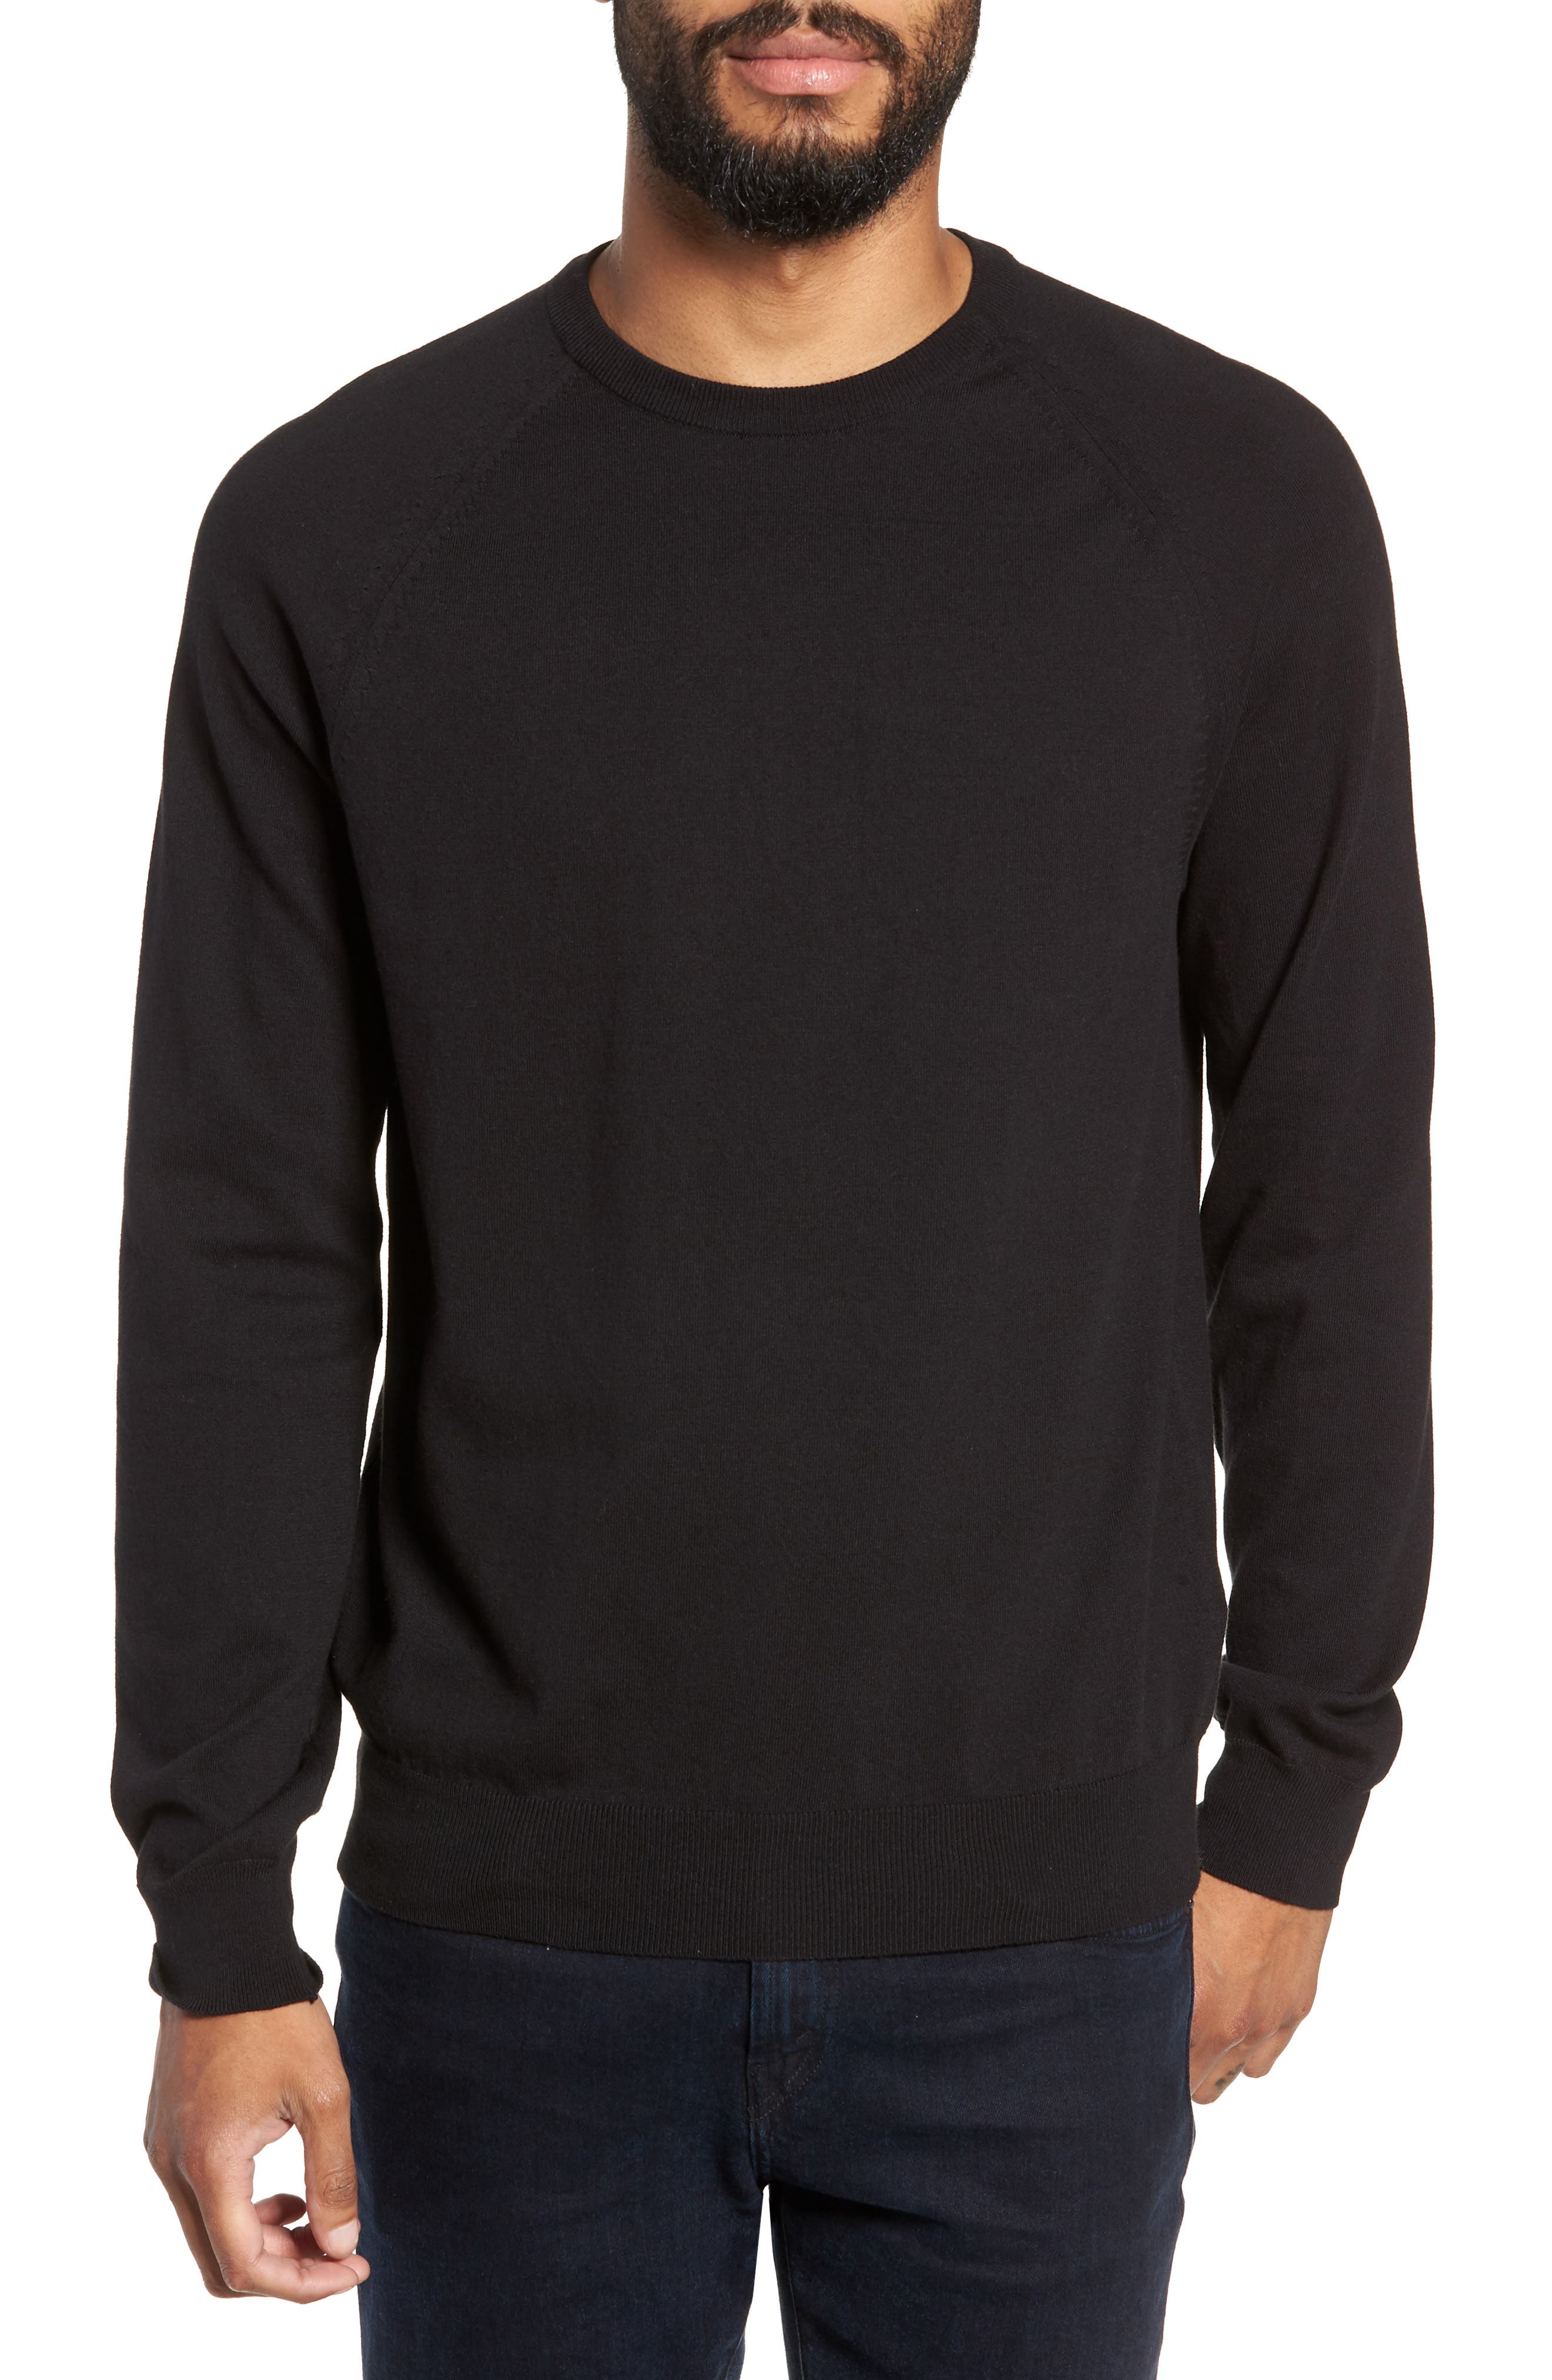 French Connection Regular Fit Crewneck Sweater, Black